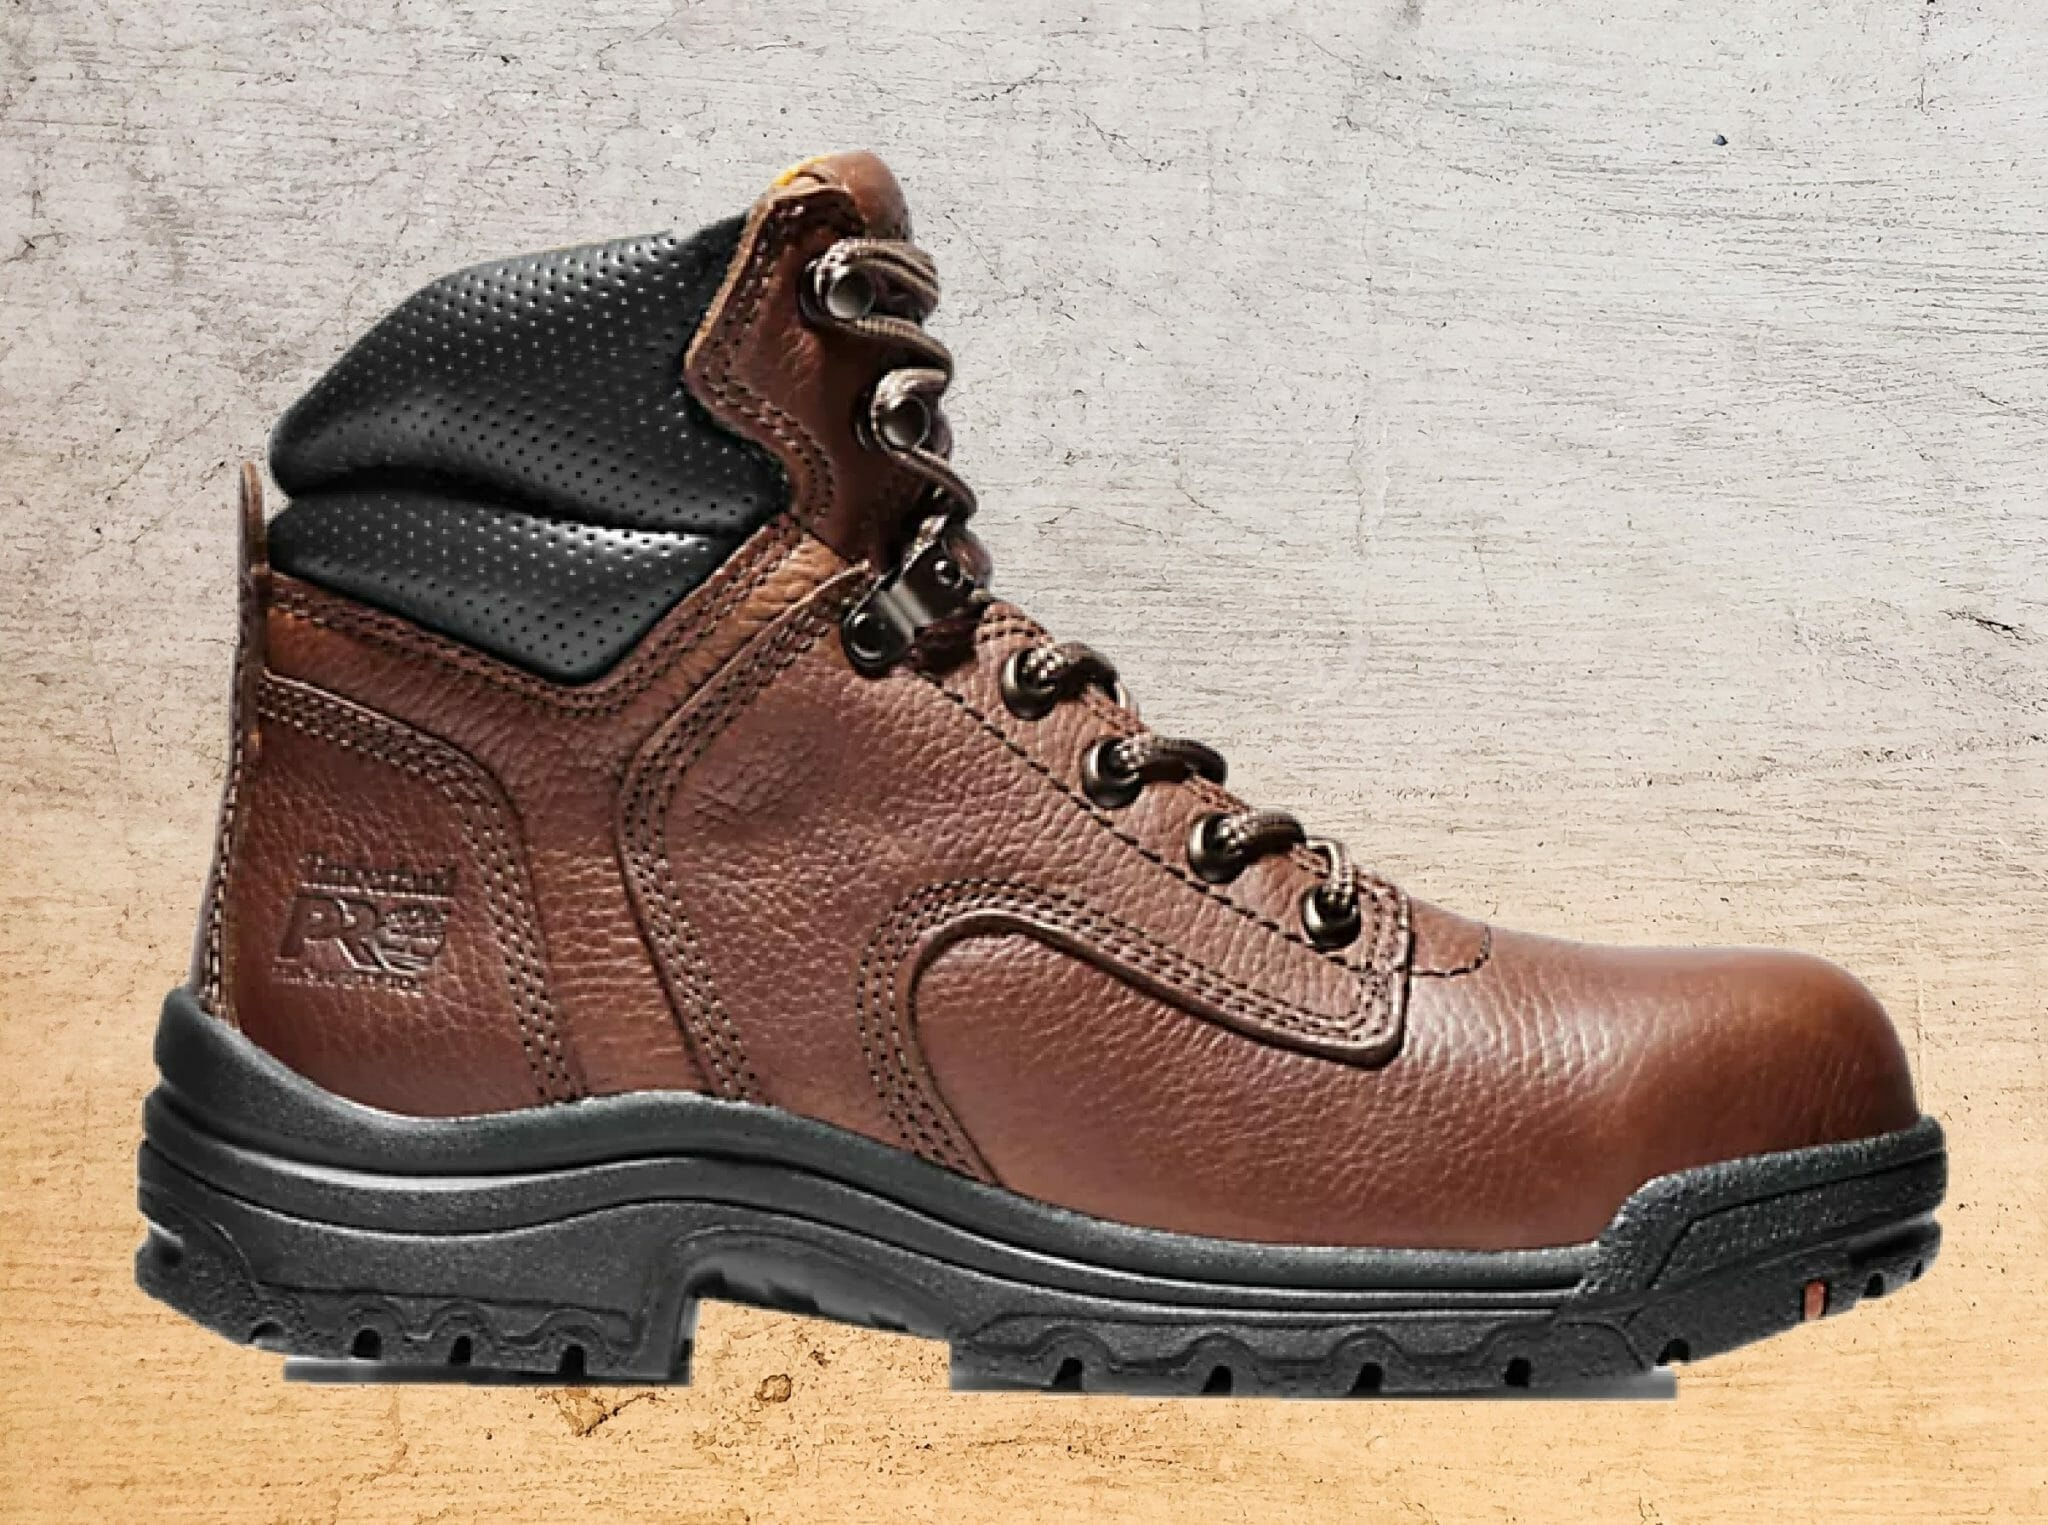 Timberland PRO Titan Work Boot for Women